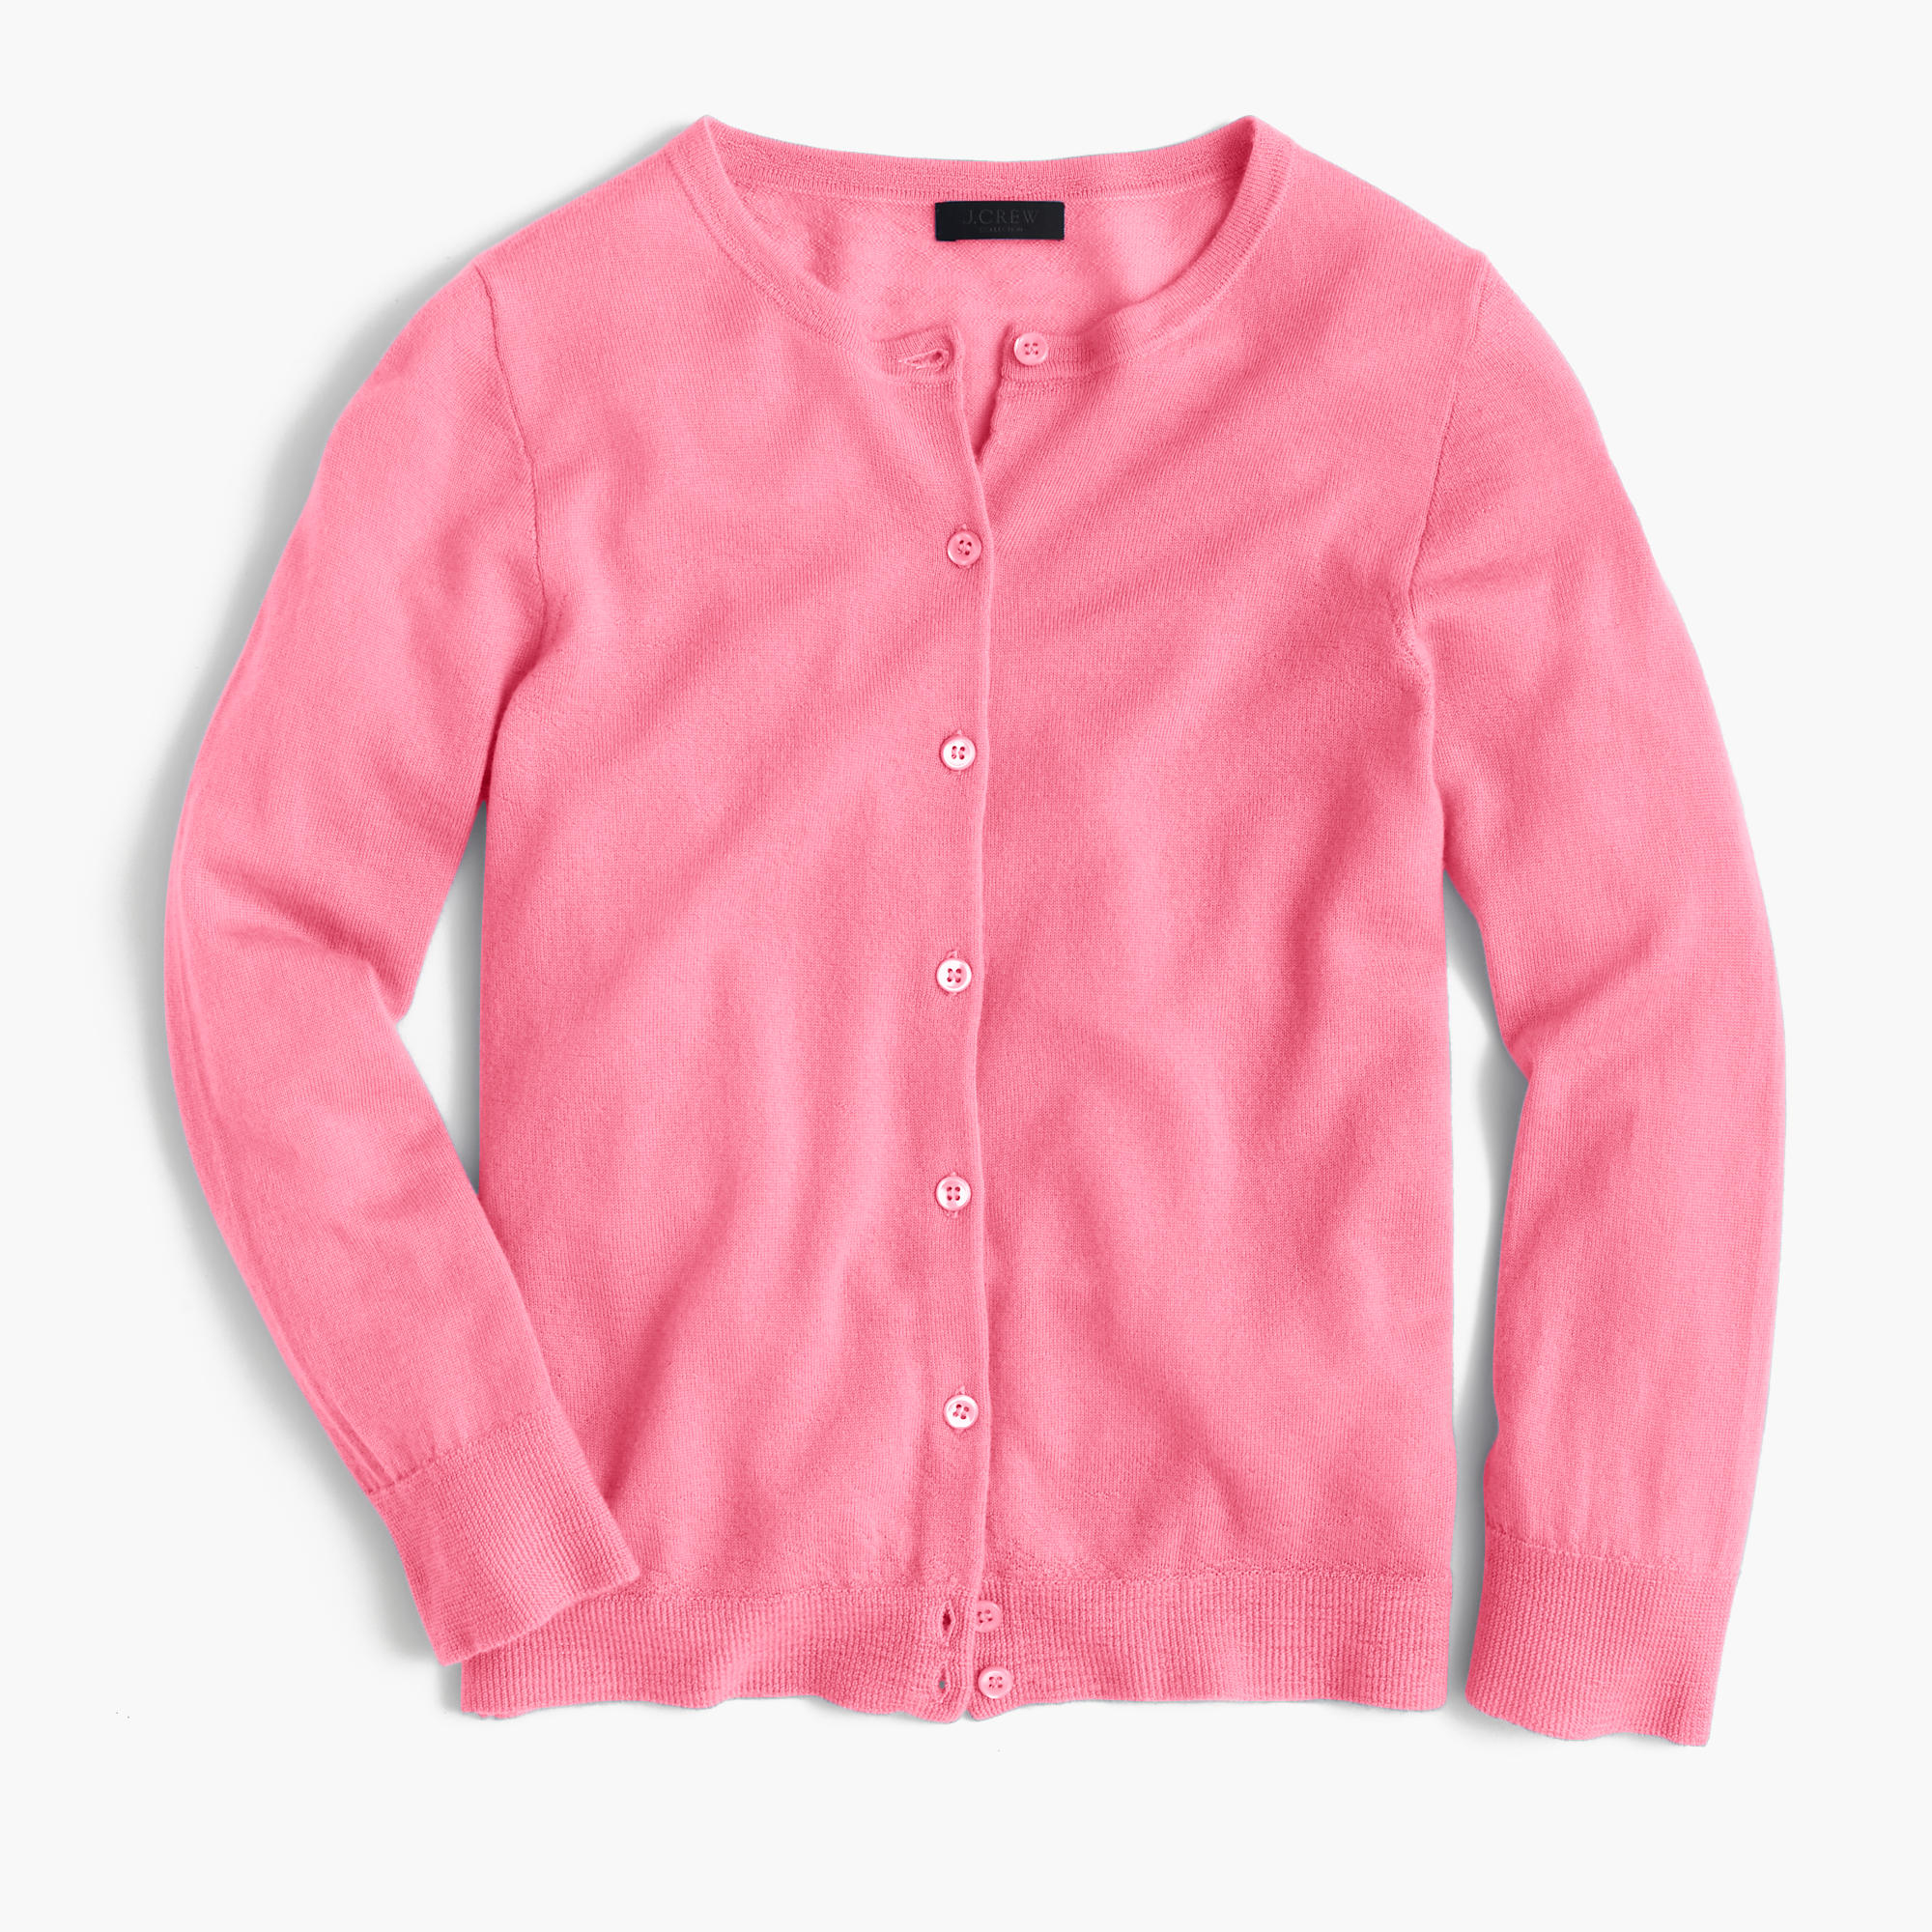 J.crew Italian Featherweight Cashmere Cardigan Sweater in Pink | Lyst